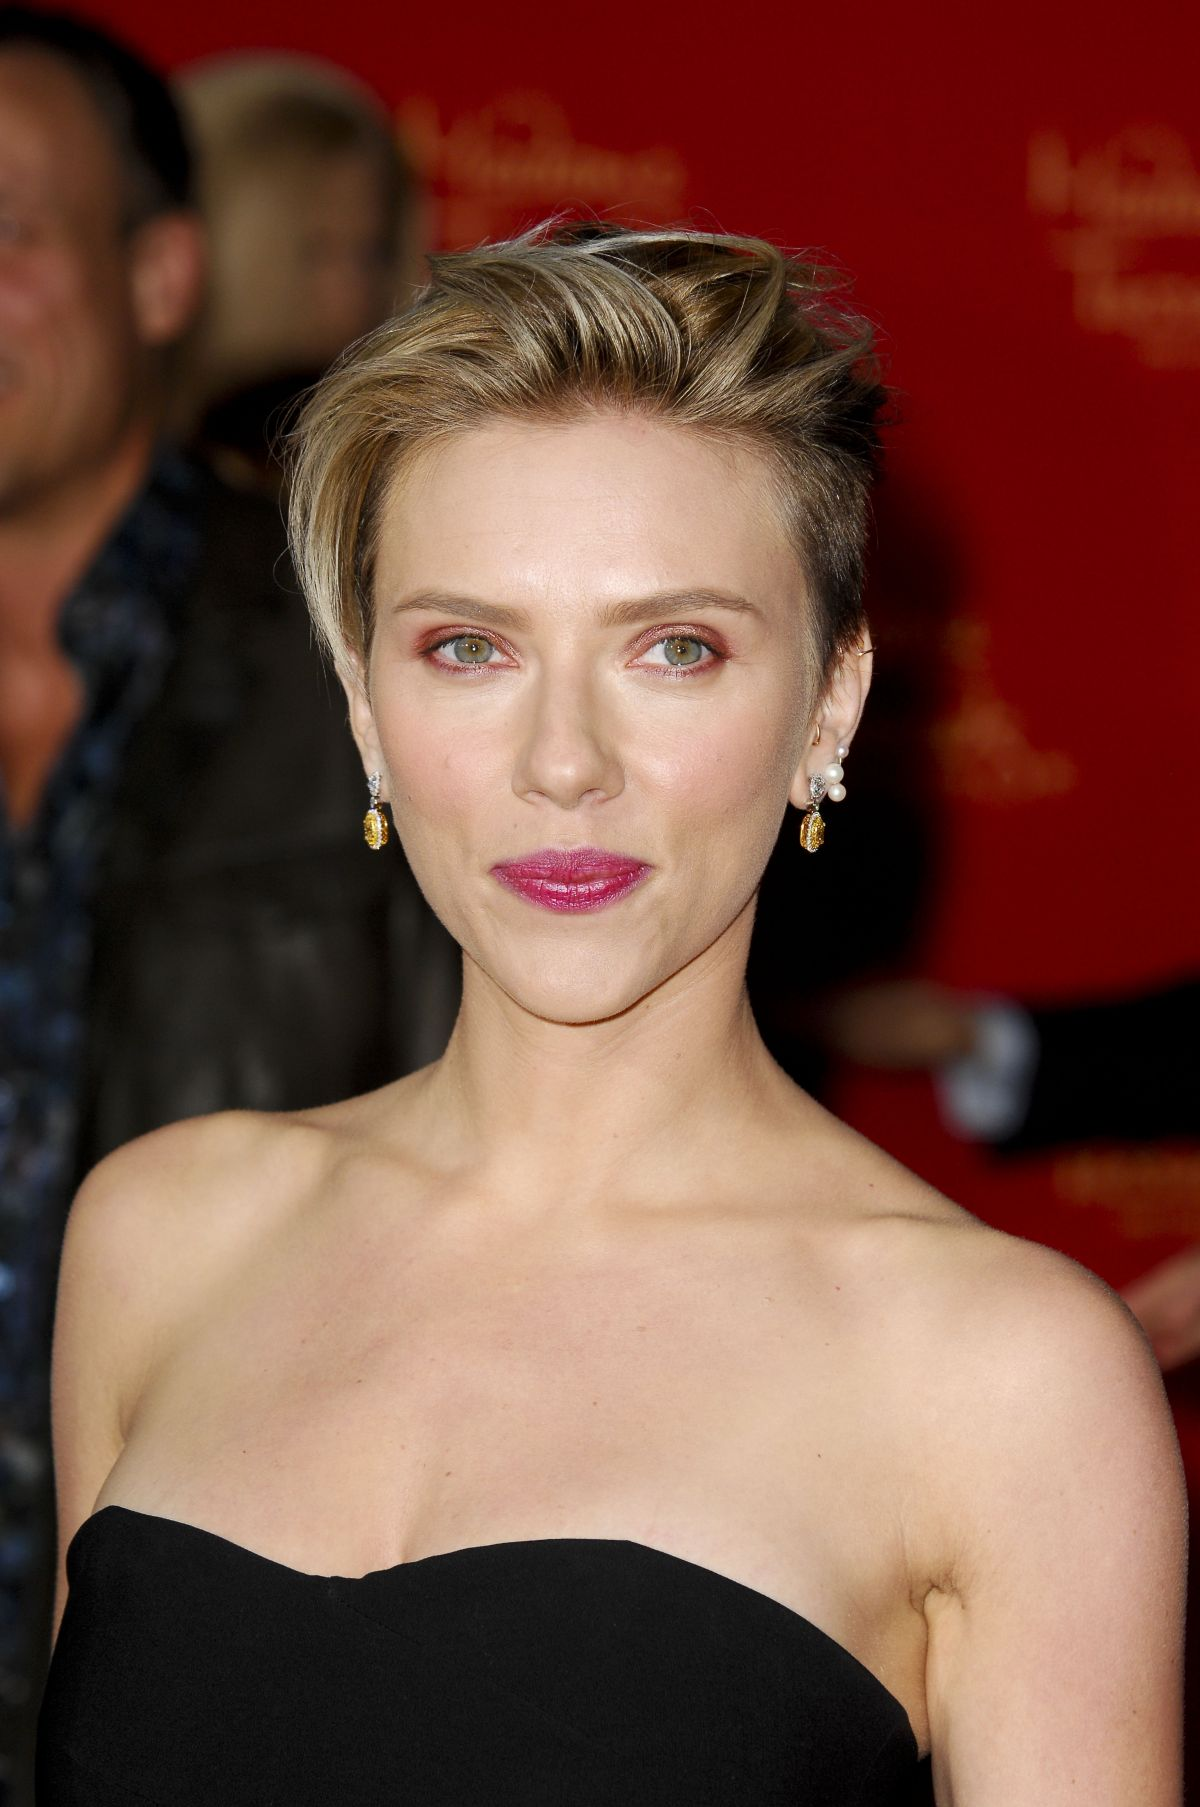 SCARLETT JOHANSSON at Avengers: Age of Ultron Premiere in ...